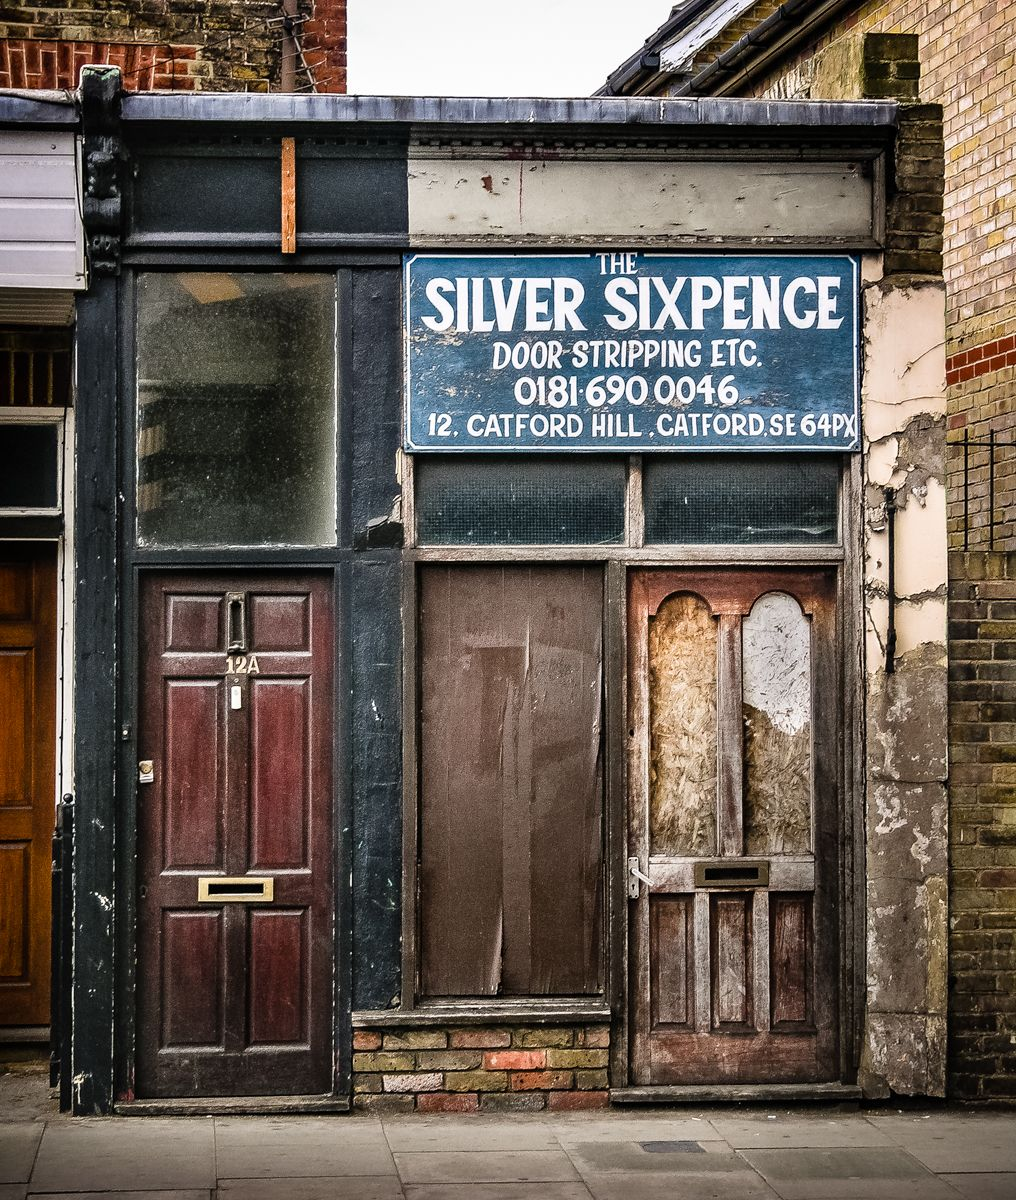 Leftoverlondoner: The Silver Sixpence, 12 Catford Hill